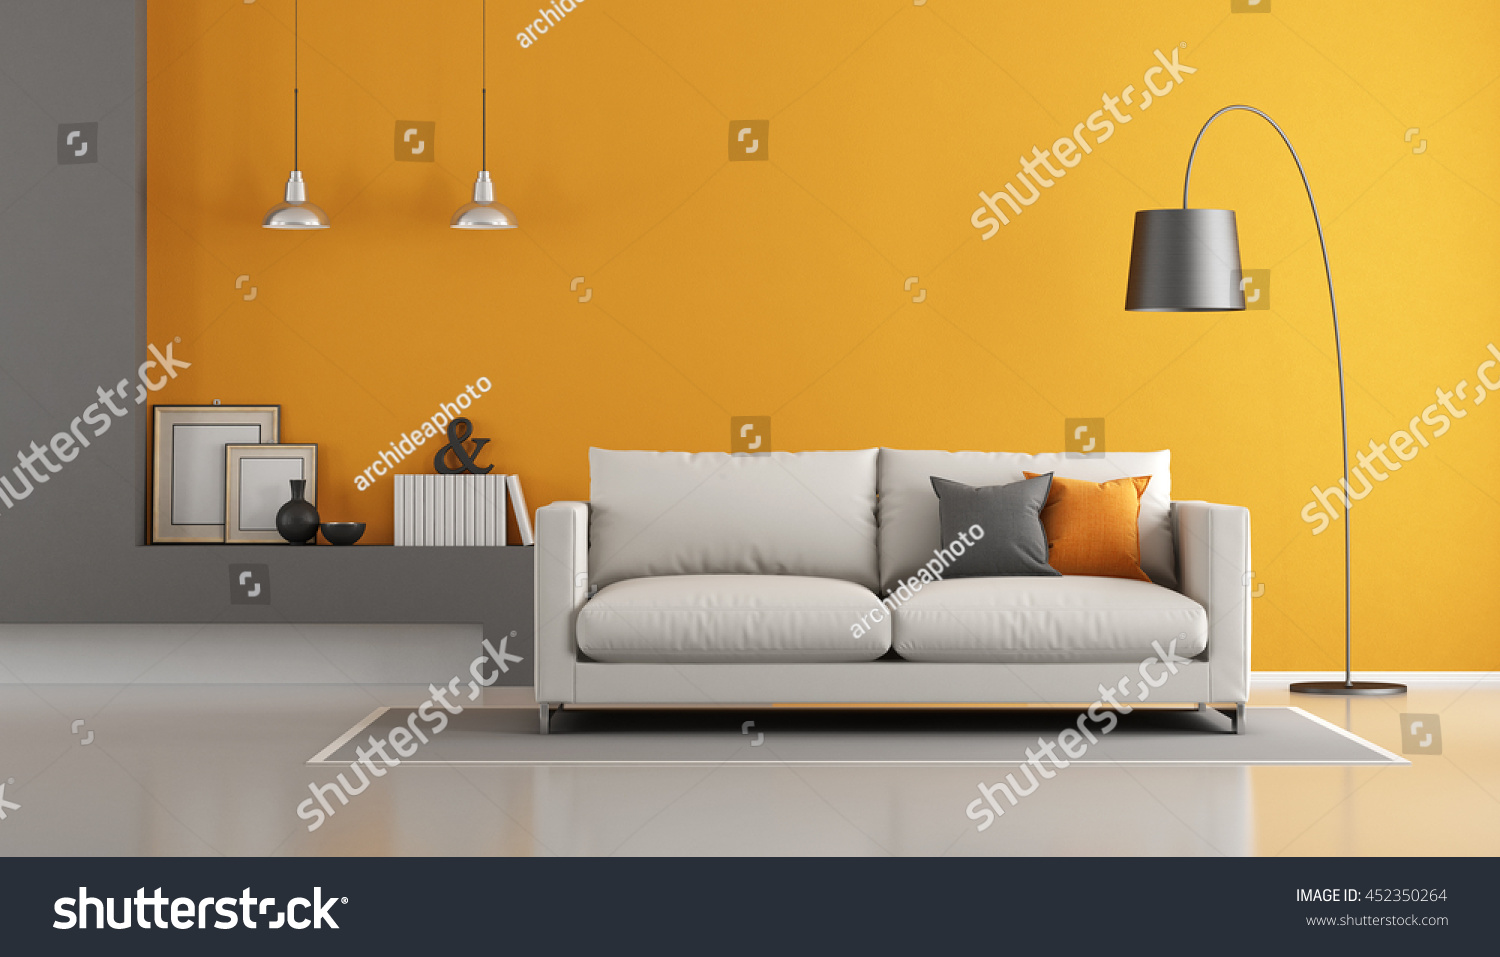 gray orange modern living room sofa stock illustration 452350264